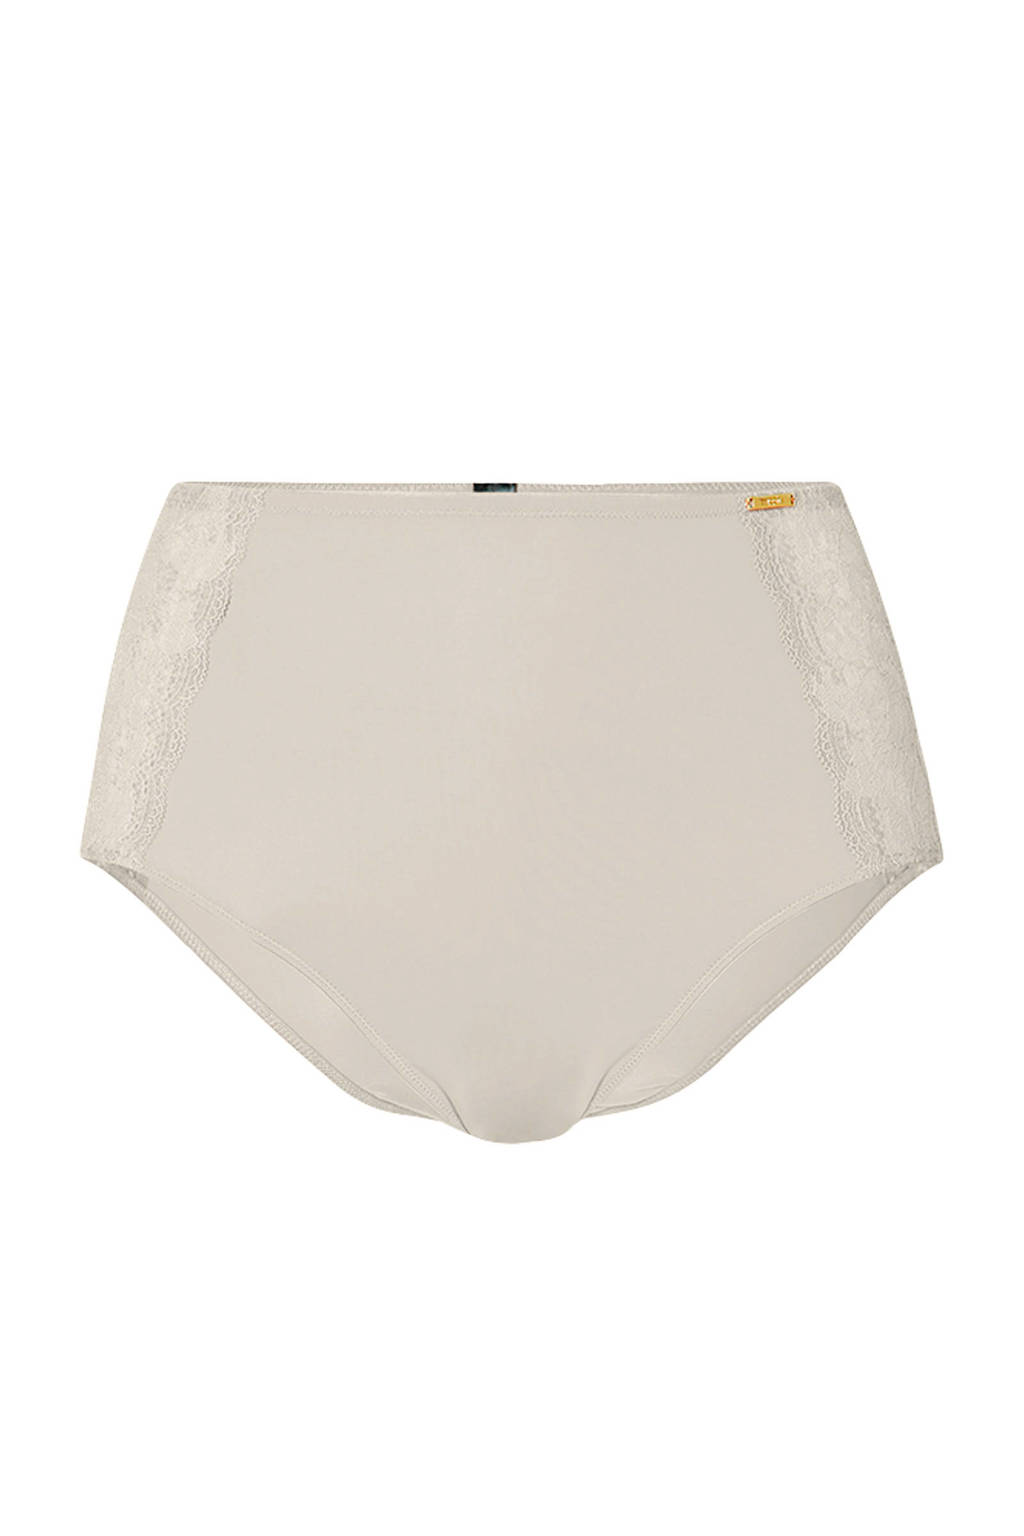 Sapph high waist slip Toulouse wit, Wit